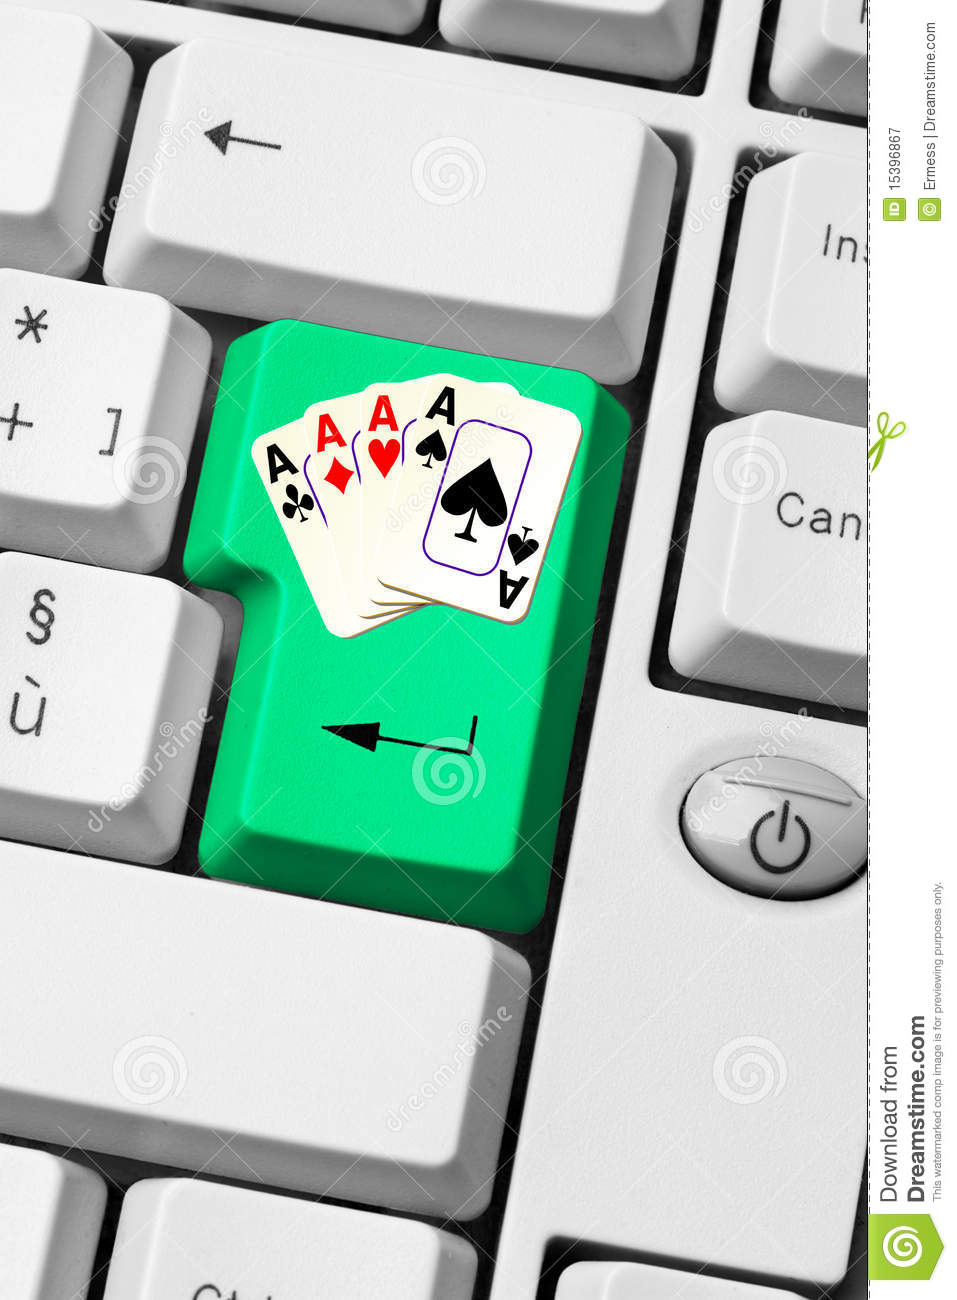 Business plan internet casino